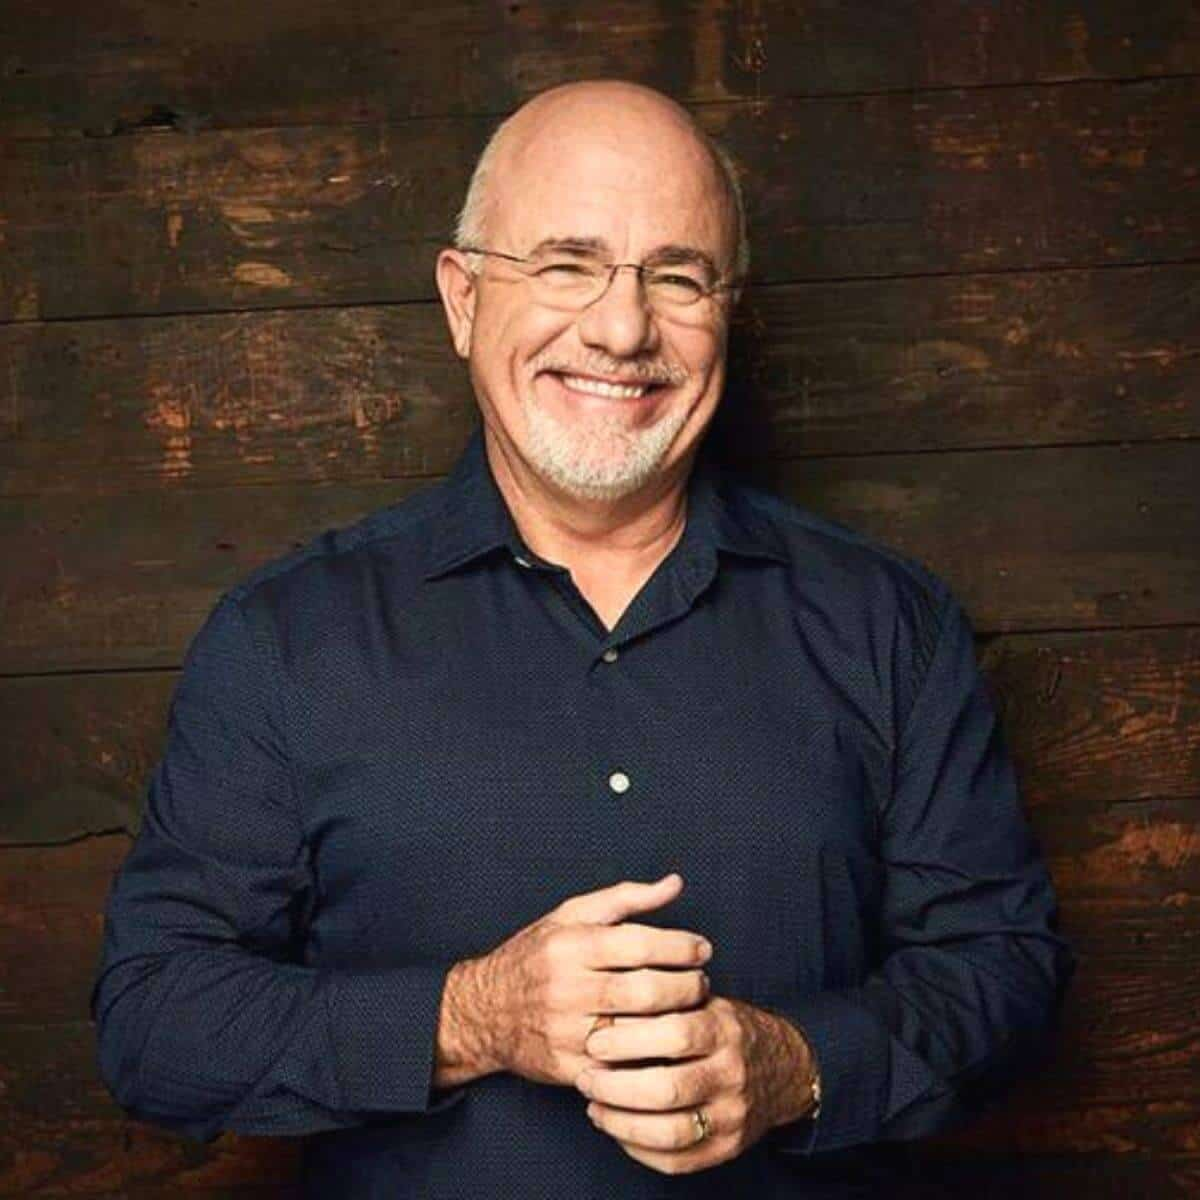 Dave Ramsey with a wooden background.